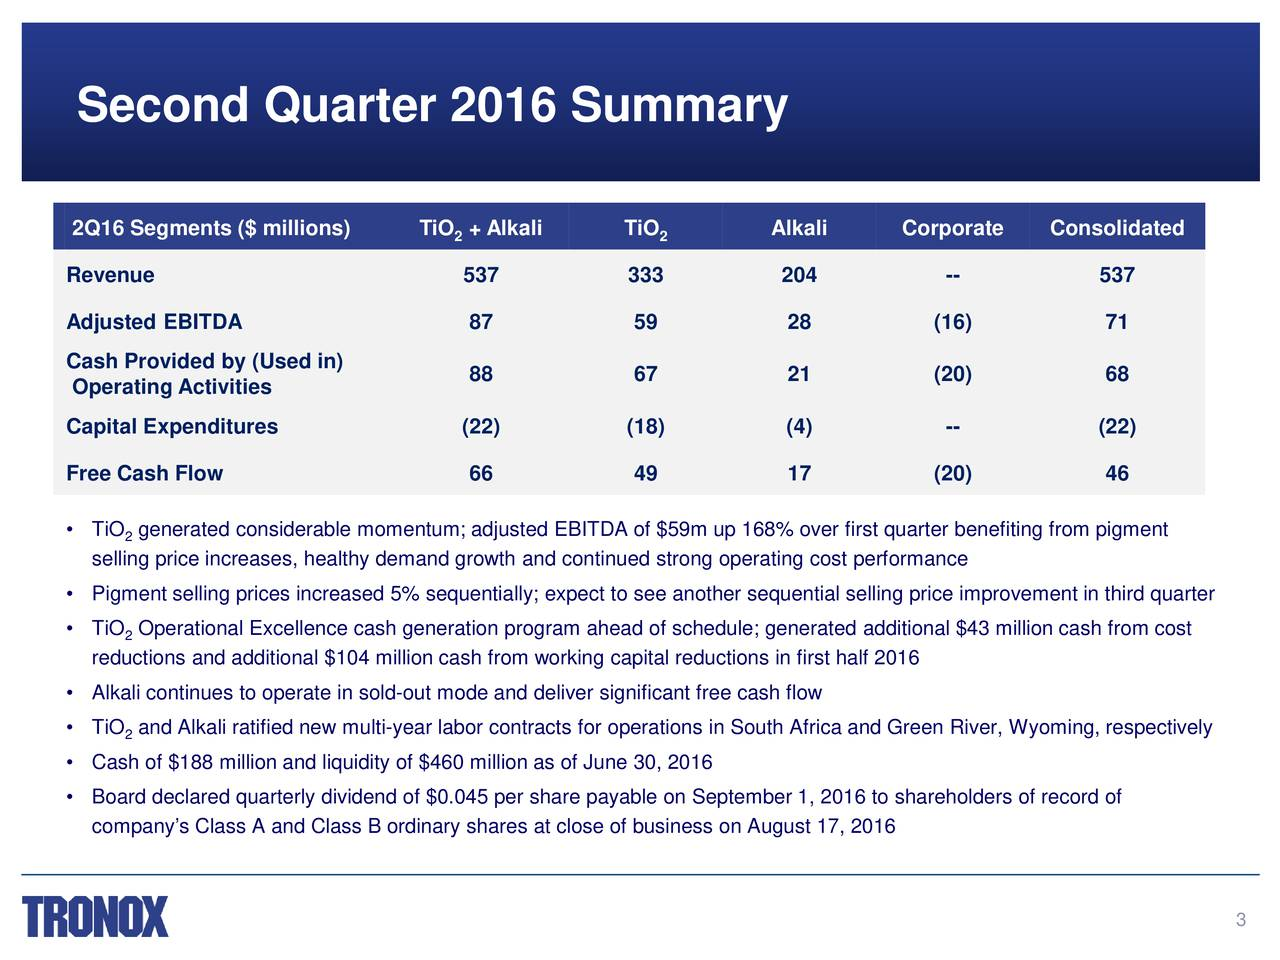 2Q16 Segments ($ millions) TiO + Alkali TiO Alkali Corporate Consolidated 2 2 Revenue 537 333 204 -- 537 Adjusted EBITDA 87 59 28 (16) 71 Cash Provided by (Used in) 88 67 21 (20) 68 Operating Activities Capital Expenditures (22) (18) (4) -- (22) Free Cash Flow 66 49 17 (20) 46 TiO 2generated considerable momentum; adjusted EBITDA of $59m up 168% over first quarter benefiting from pigment selling price increases, healthy demand growth and continued strong operating costperformance Pigment selling prices increased 5% sequentially; expect to see another sequential selling price improvement in third quarter TiO Operational Excellence cash generation program ahead of schedule; generatedadditional $43 million cash from cost 2 reductions and additional $104 million cash from working capital reductions in first half 2016 Alkali continues to operate in sold-out mode and deliver significant free cash flow TiO 2and Alkali ratified new multi-year labor contracts for operations in South Africa and Green River, Wyoming,respectively Cash of $188 million and liquidity of $460 million as of June 30, 2016 Board declared quarterly dividend of $0.045 per share payable on September 1, 2016to shareholders of record of companys Class A and Class B ordinary shares at close of business on August 17, 2016 3